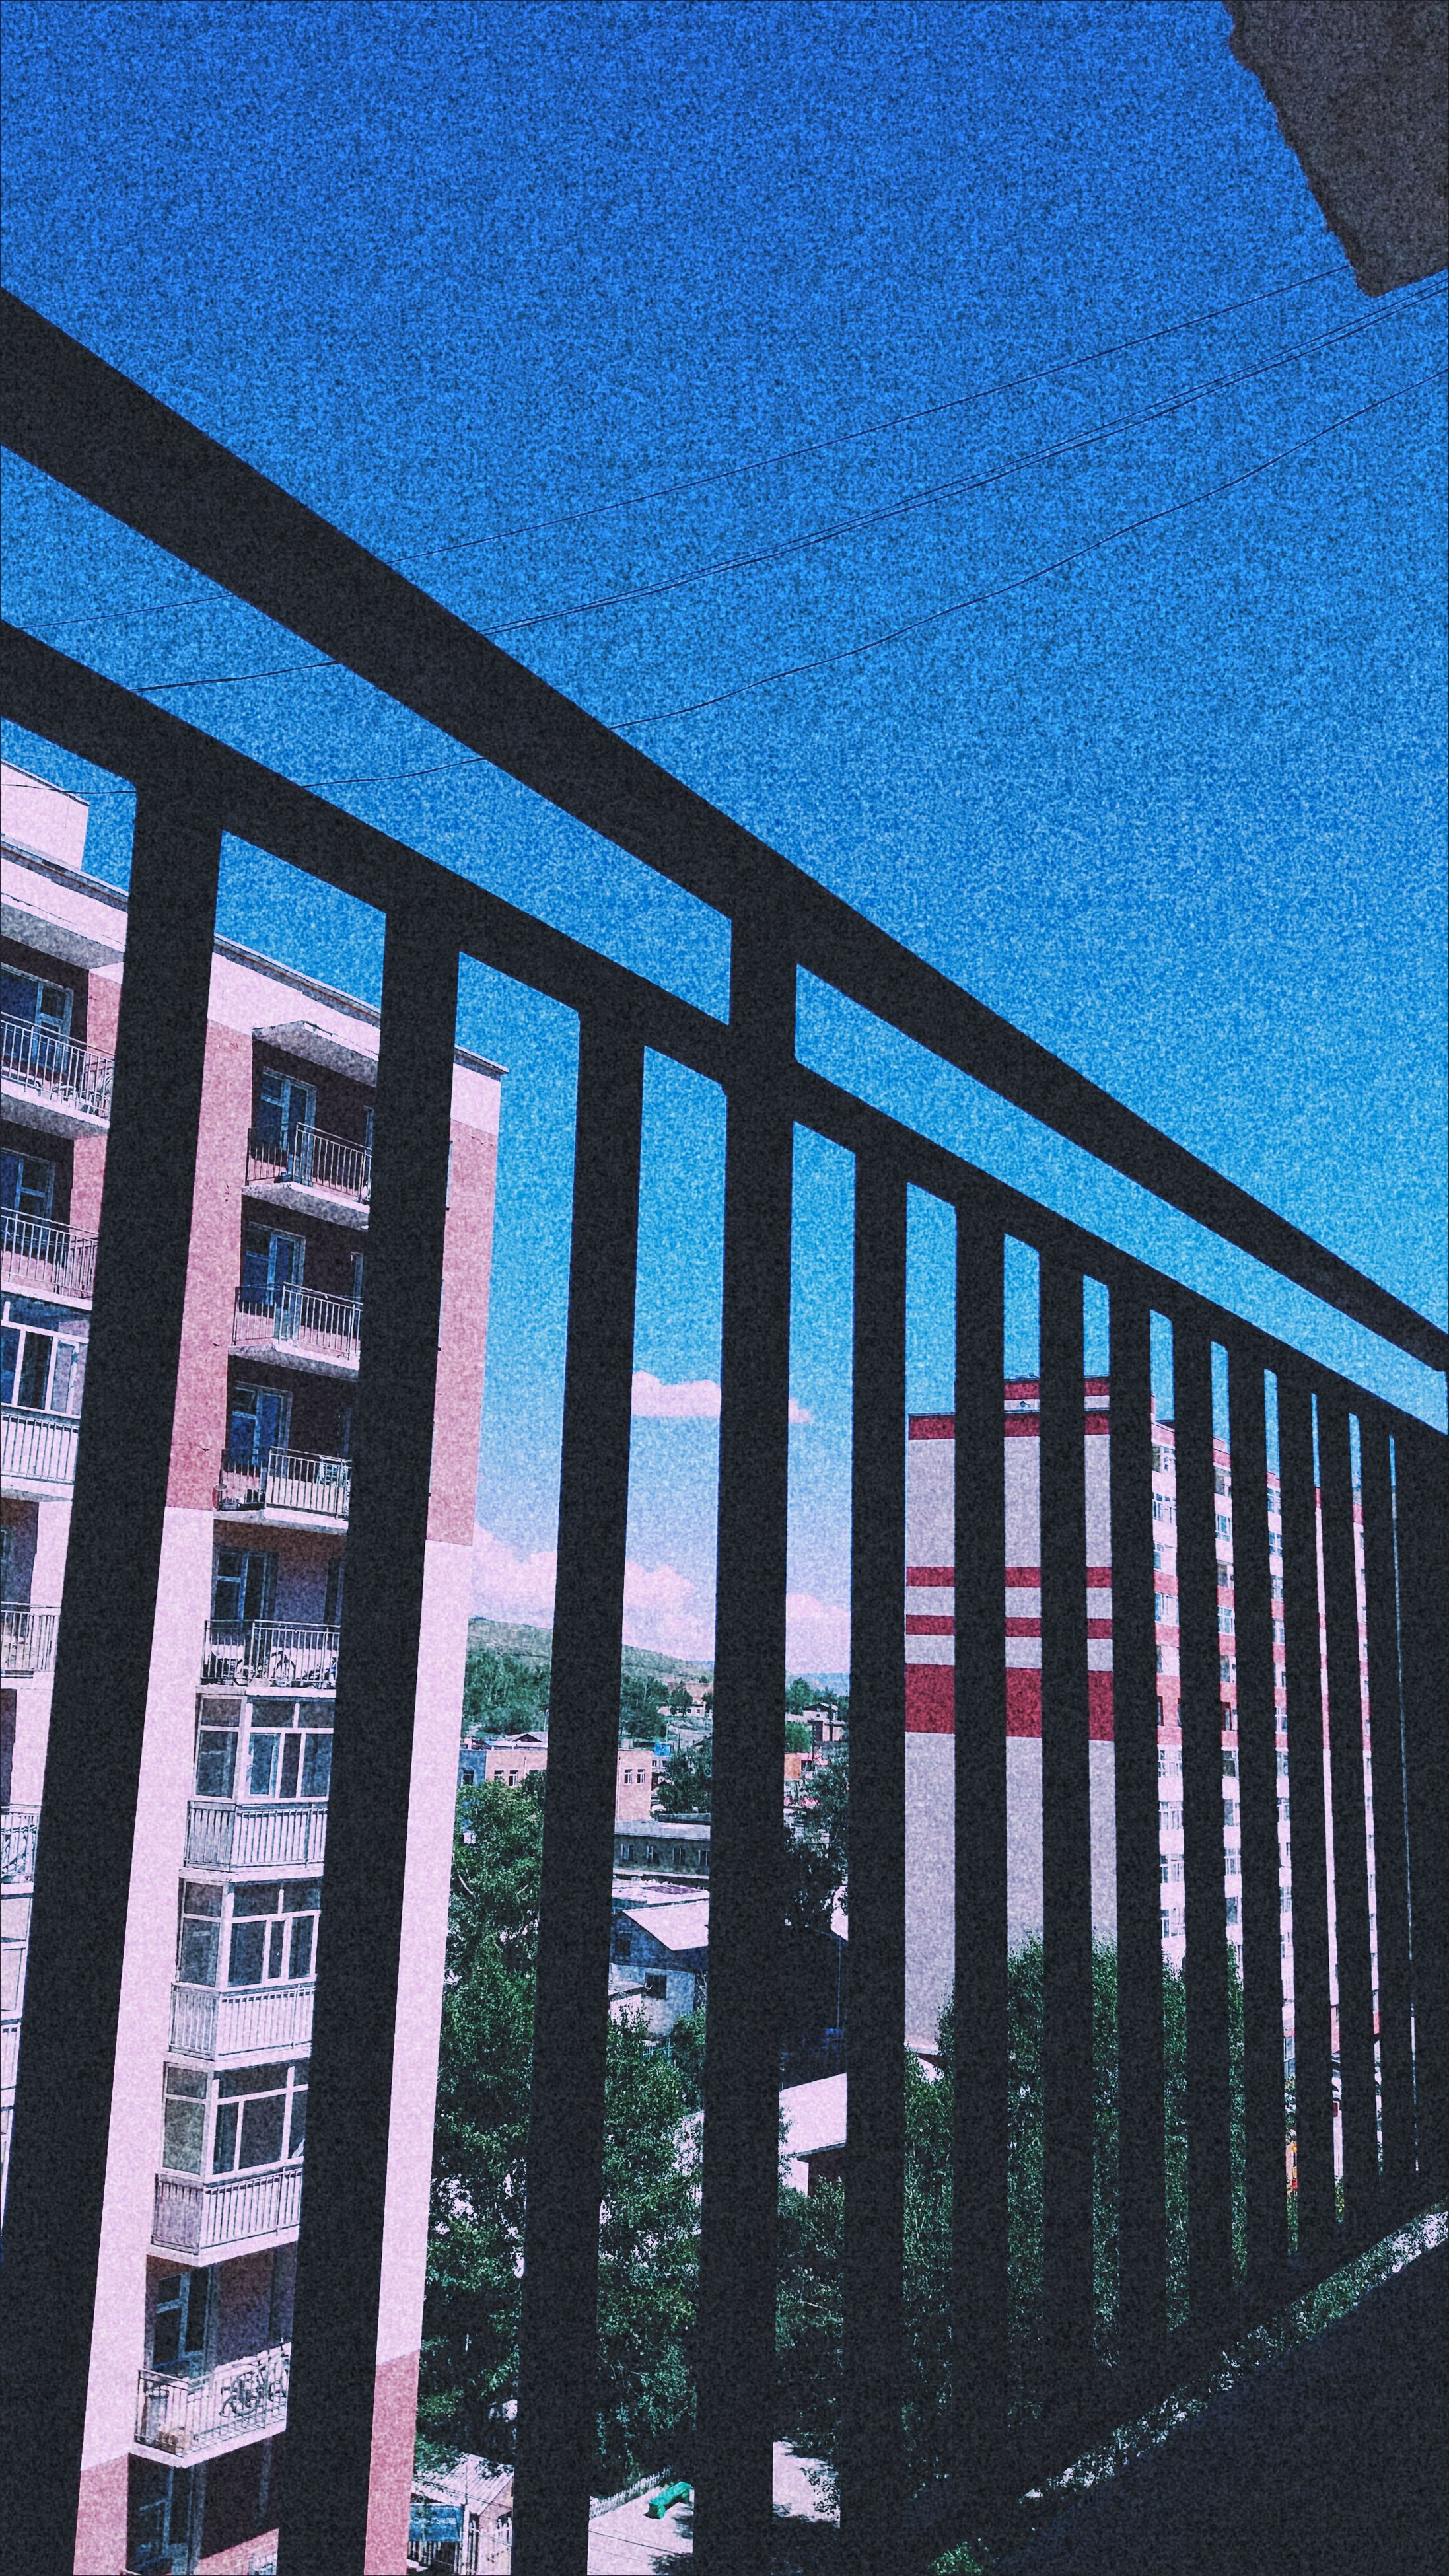 architecture, built structure, day, blue, no people, window, outdoors, clear sky, building exterior, nature, tree, sky